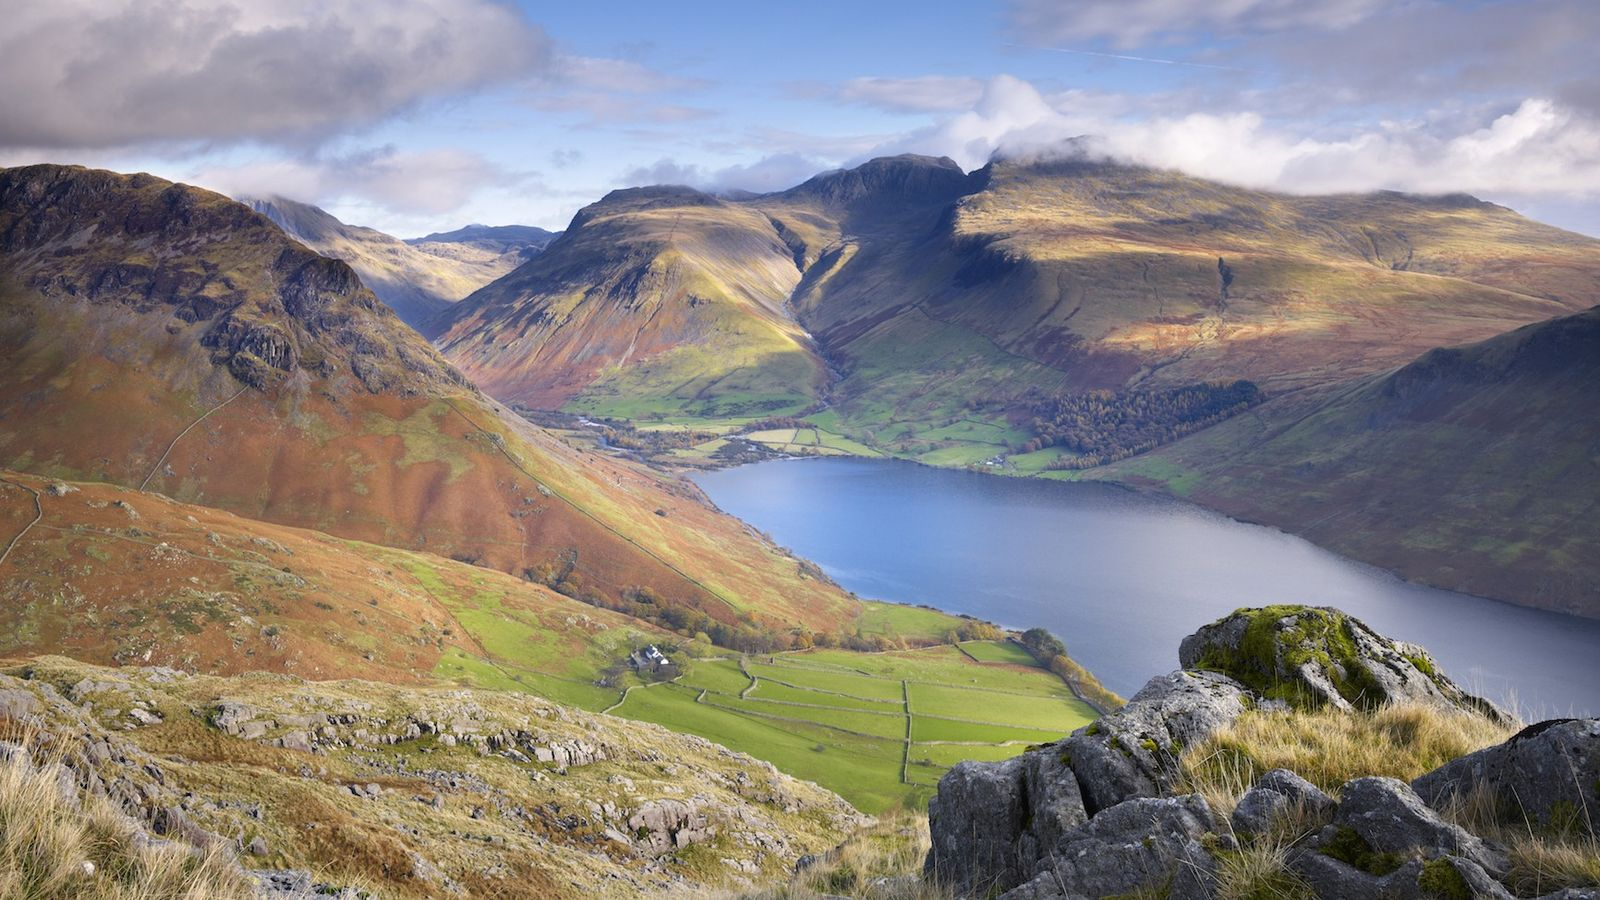 With it's summit shrouded in cloud, Scafell Pike towers over Wastwater in the Lake District.